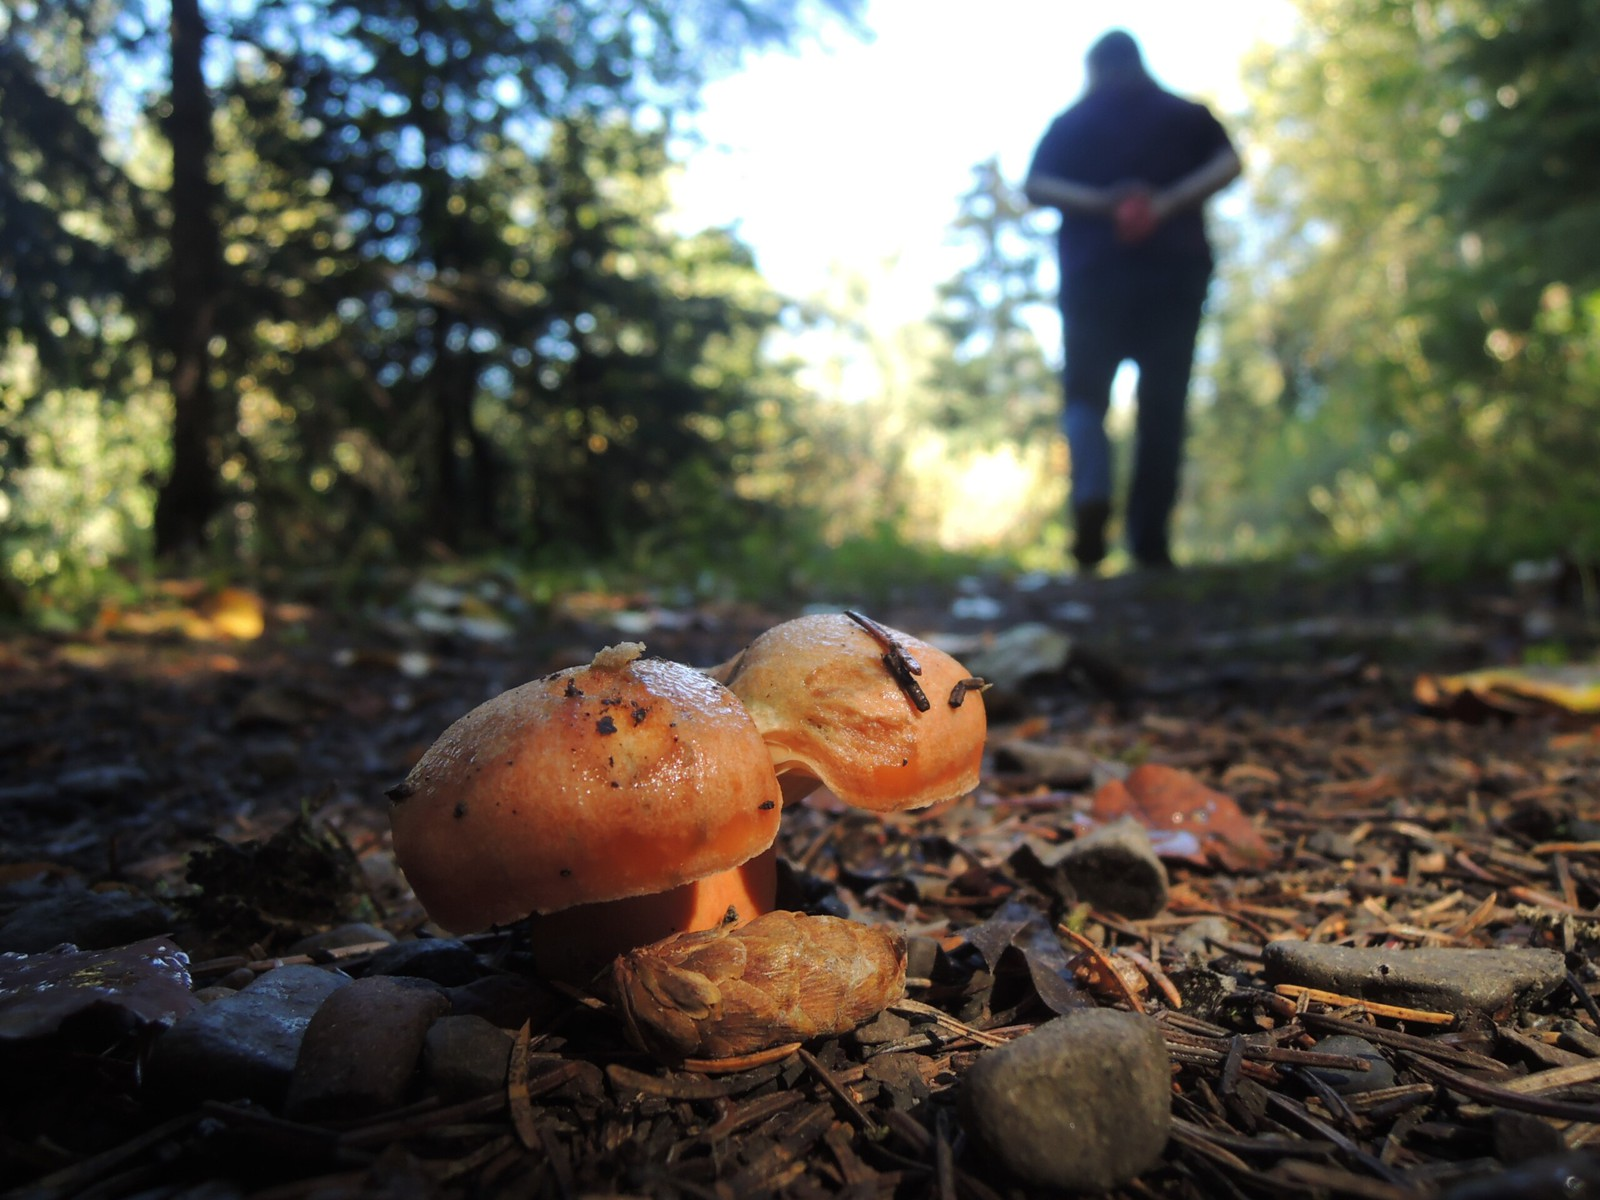 Mushroom on a dirt path with someone walking away in the background